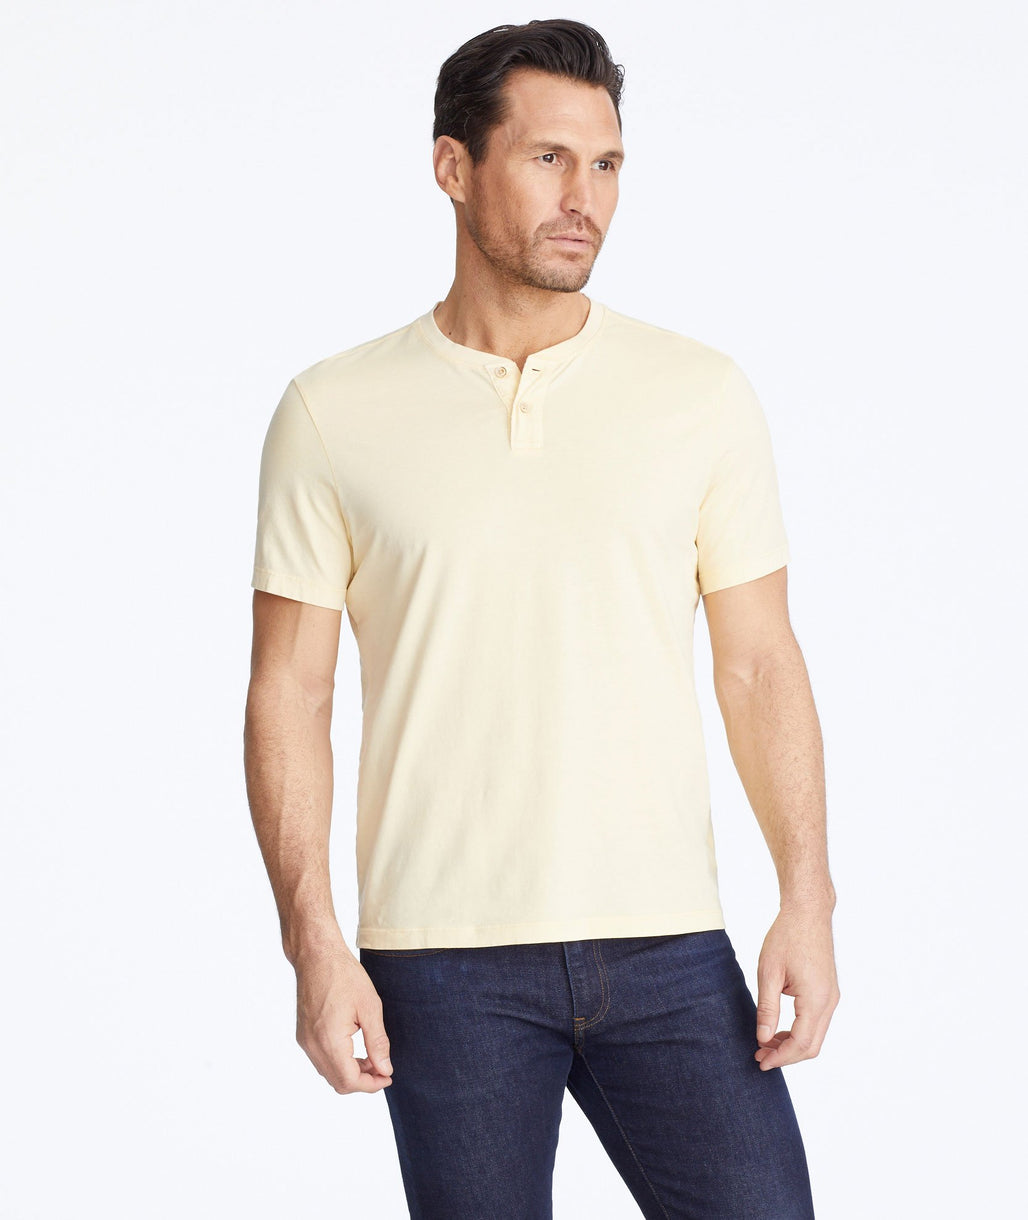 Model wearing a Yellow Short-Sleeve Baxter Henley